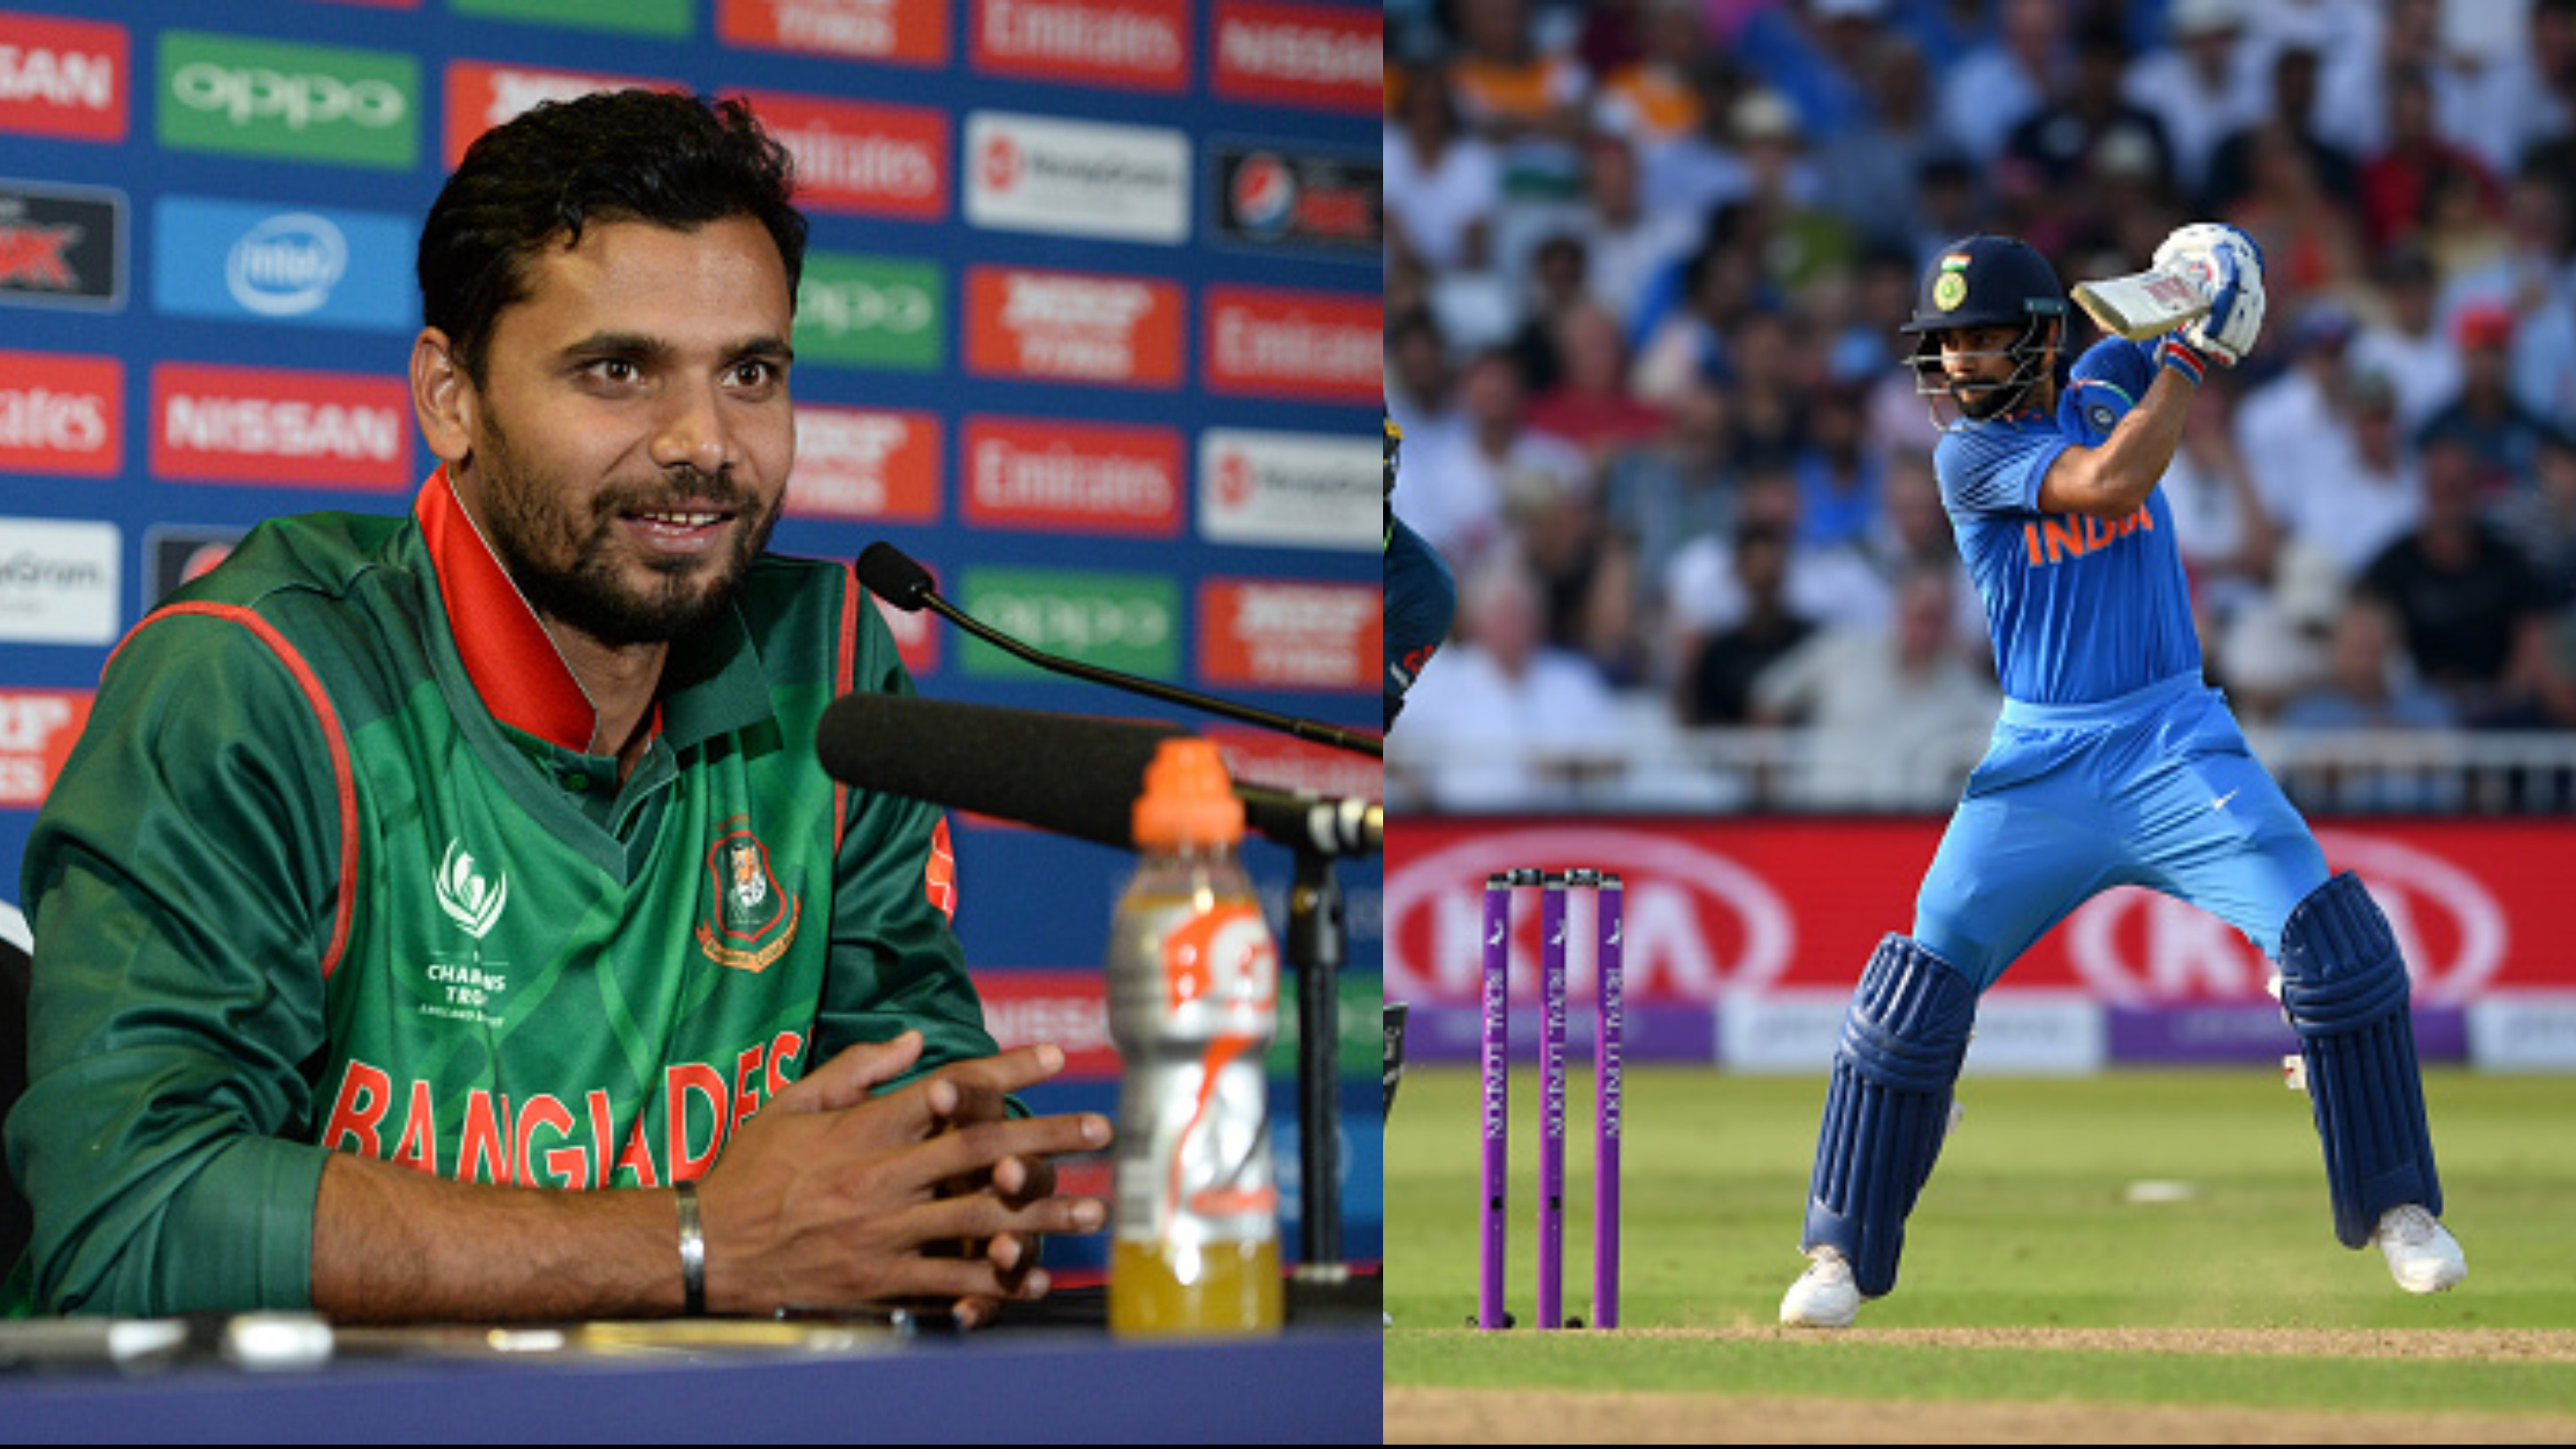 Asia Cup 2018: Virat Kohli's absence is an advantage for every team, says Mashrafe Mortaza